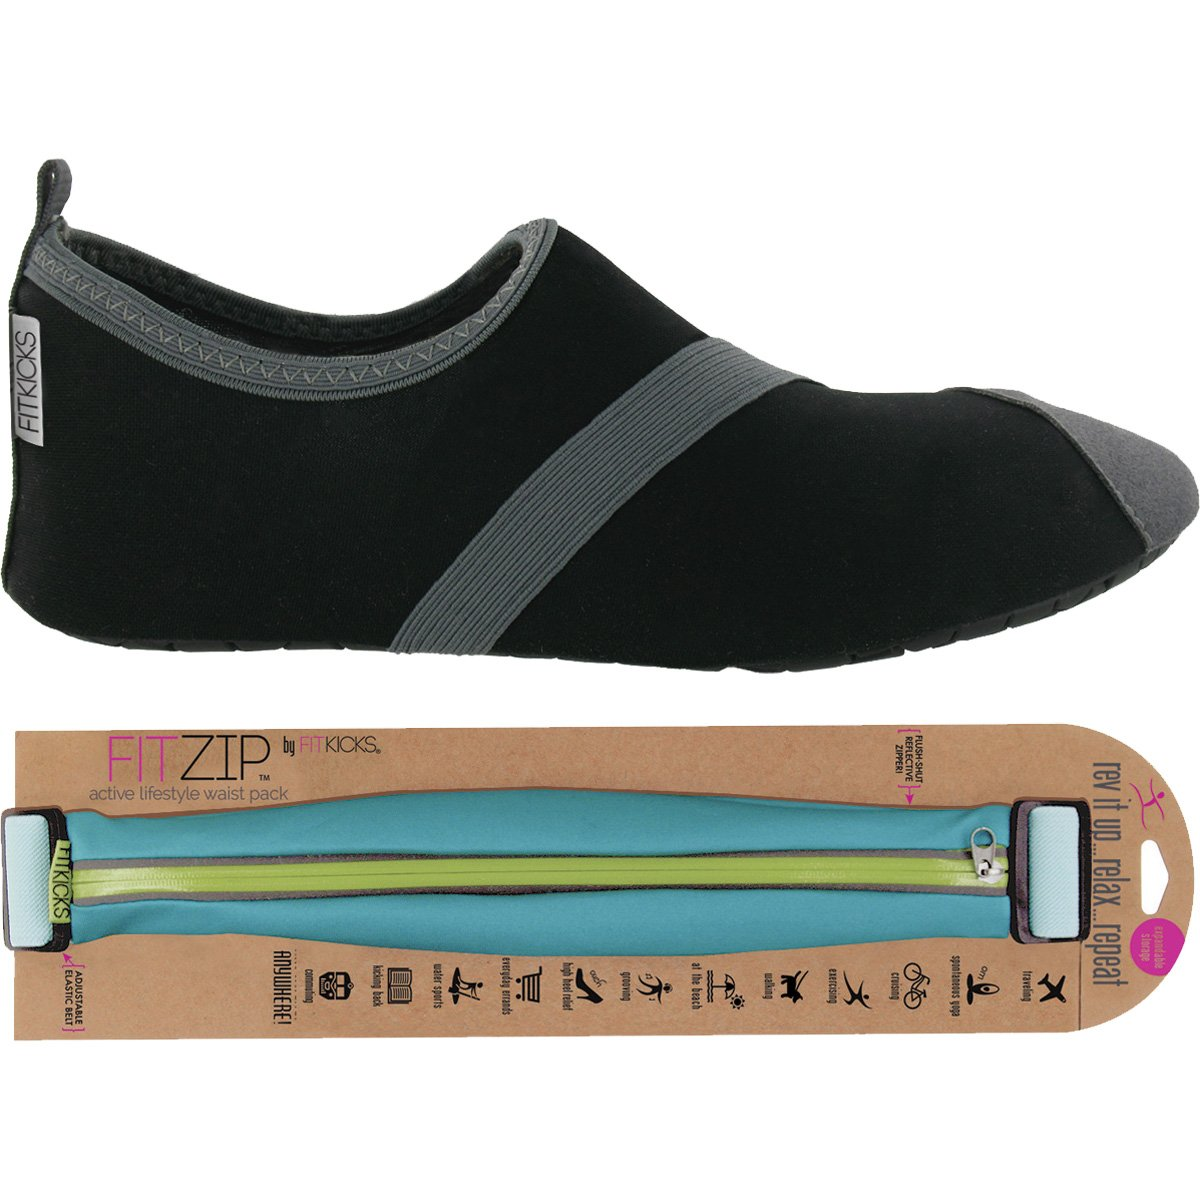 FITKICKS Womens Shoes with FITZIP Waist Pack, Black/Grey Shoe (Large (8.5-9.5), Turquoise)